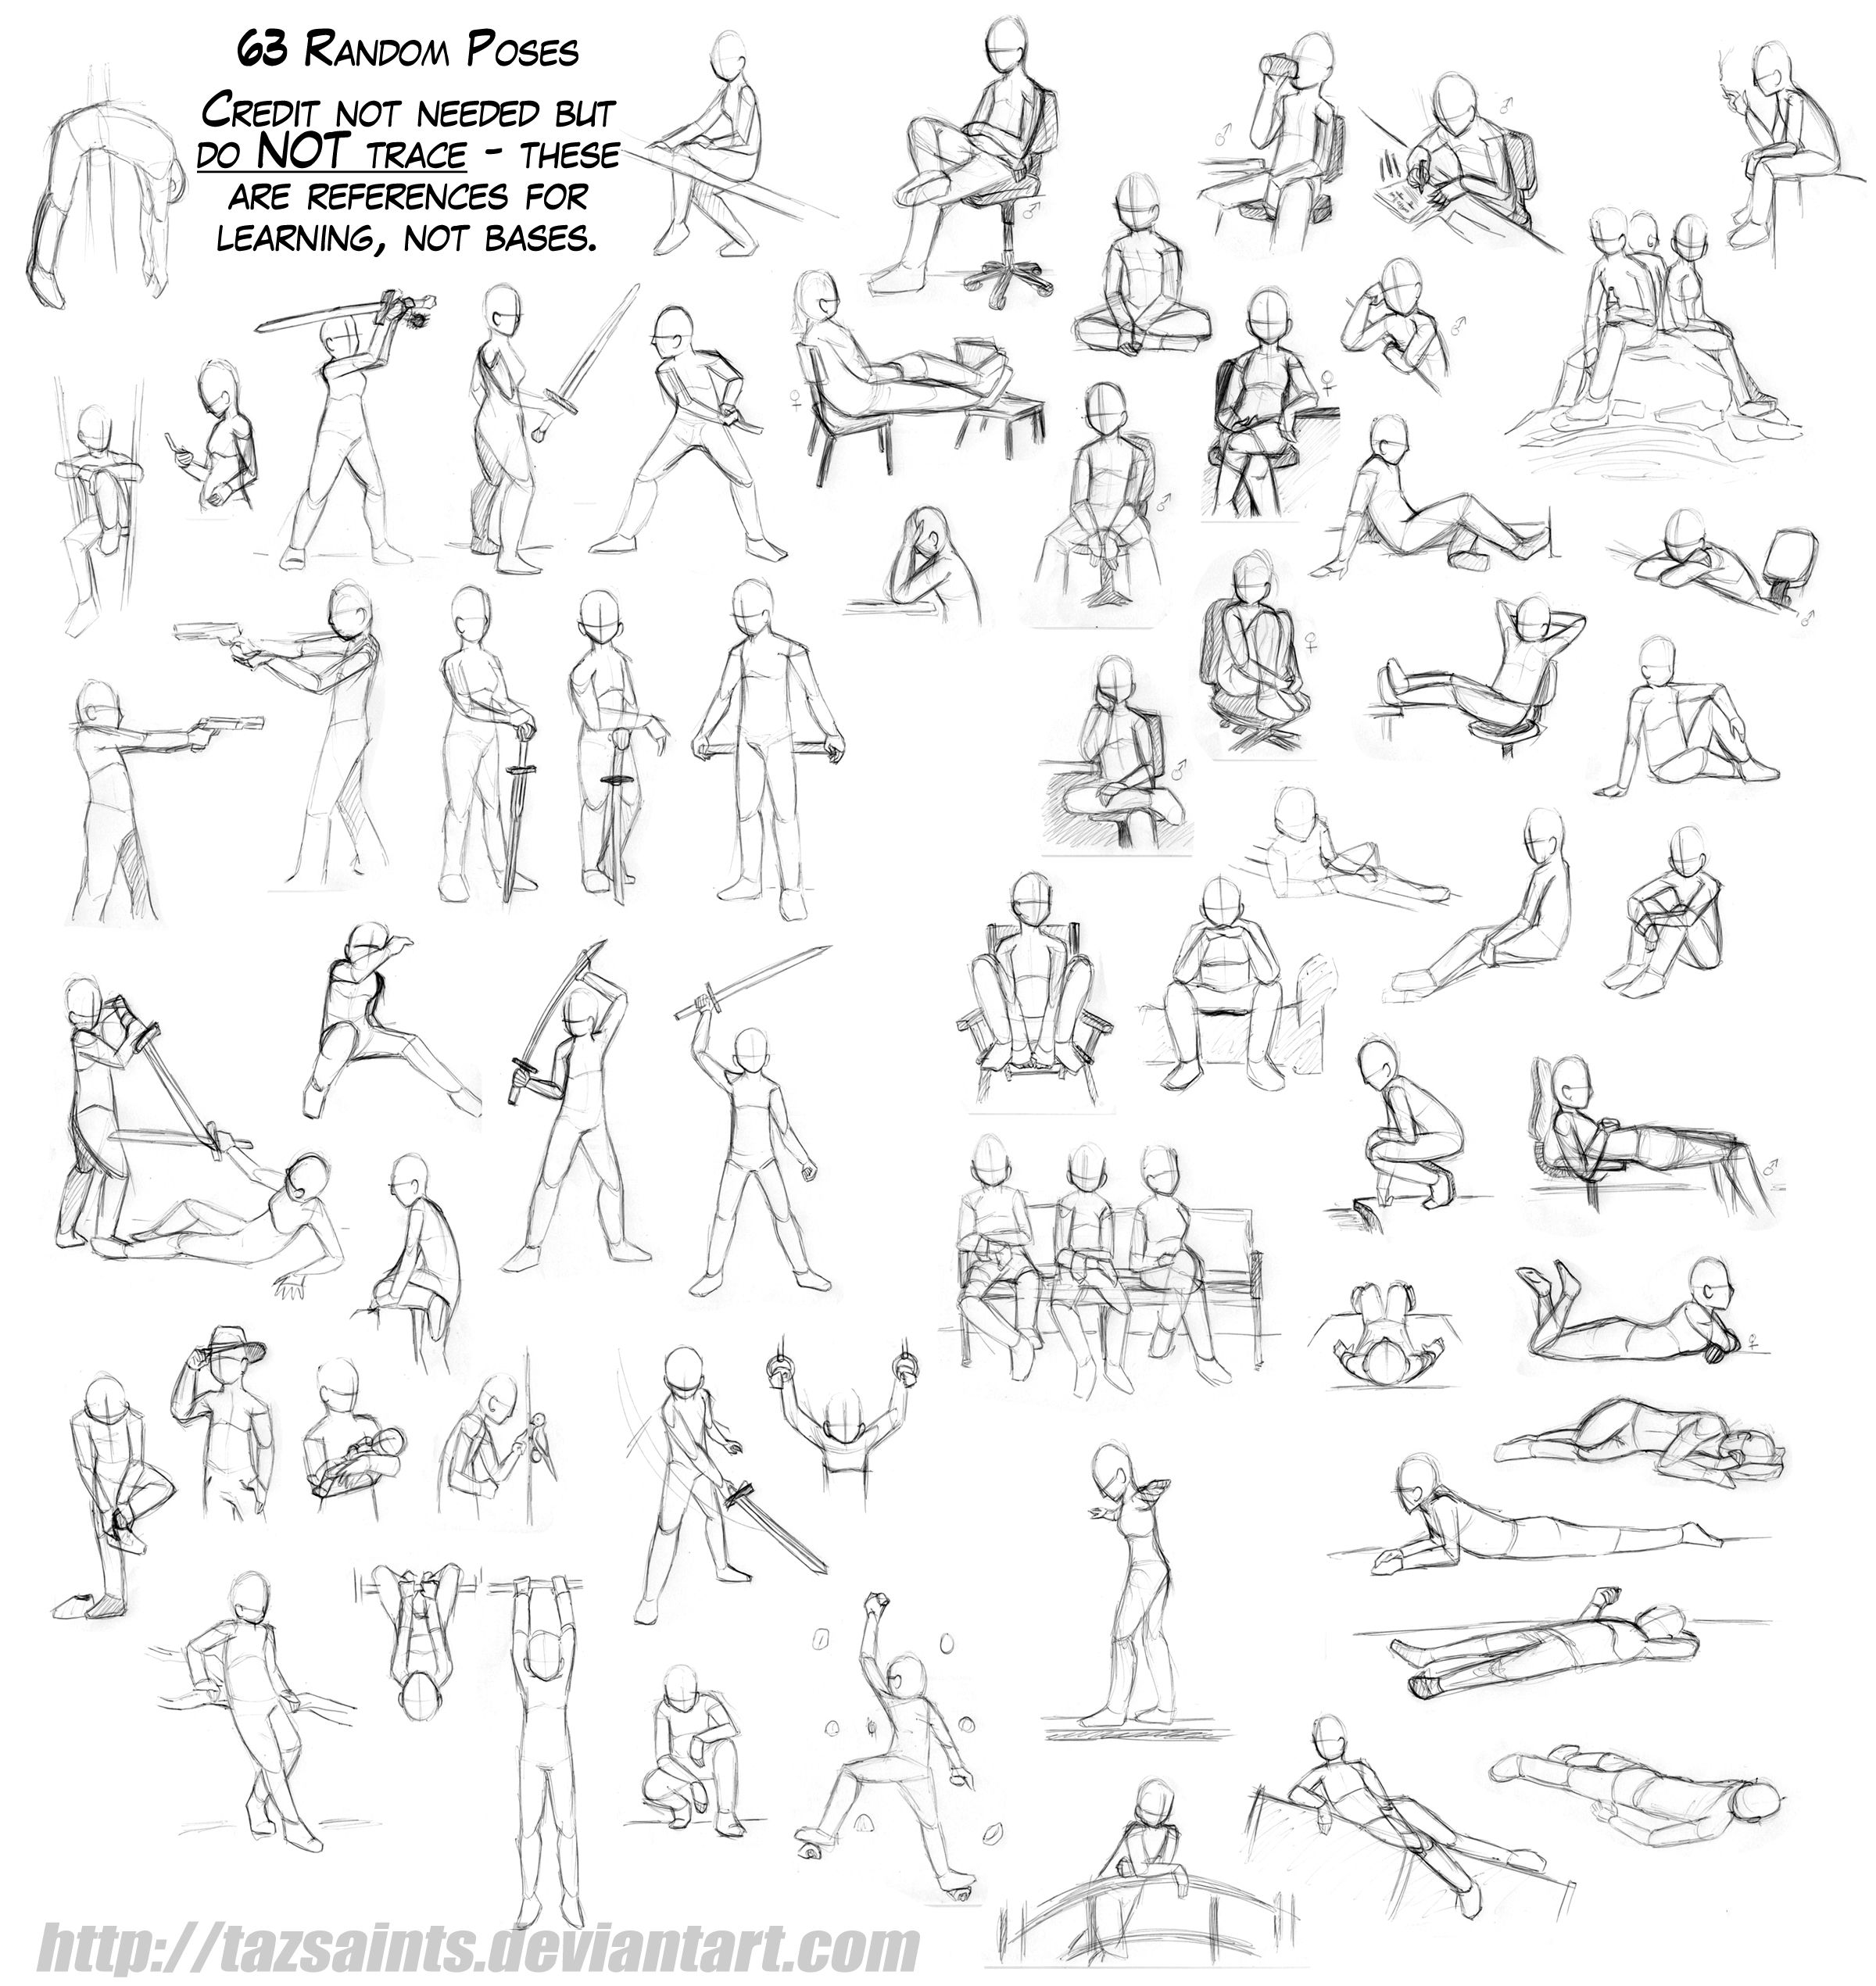 63 Random Poses by on deviantART